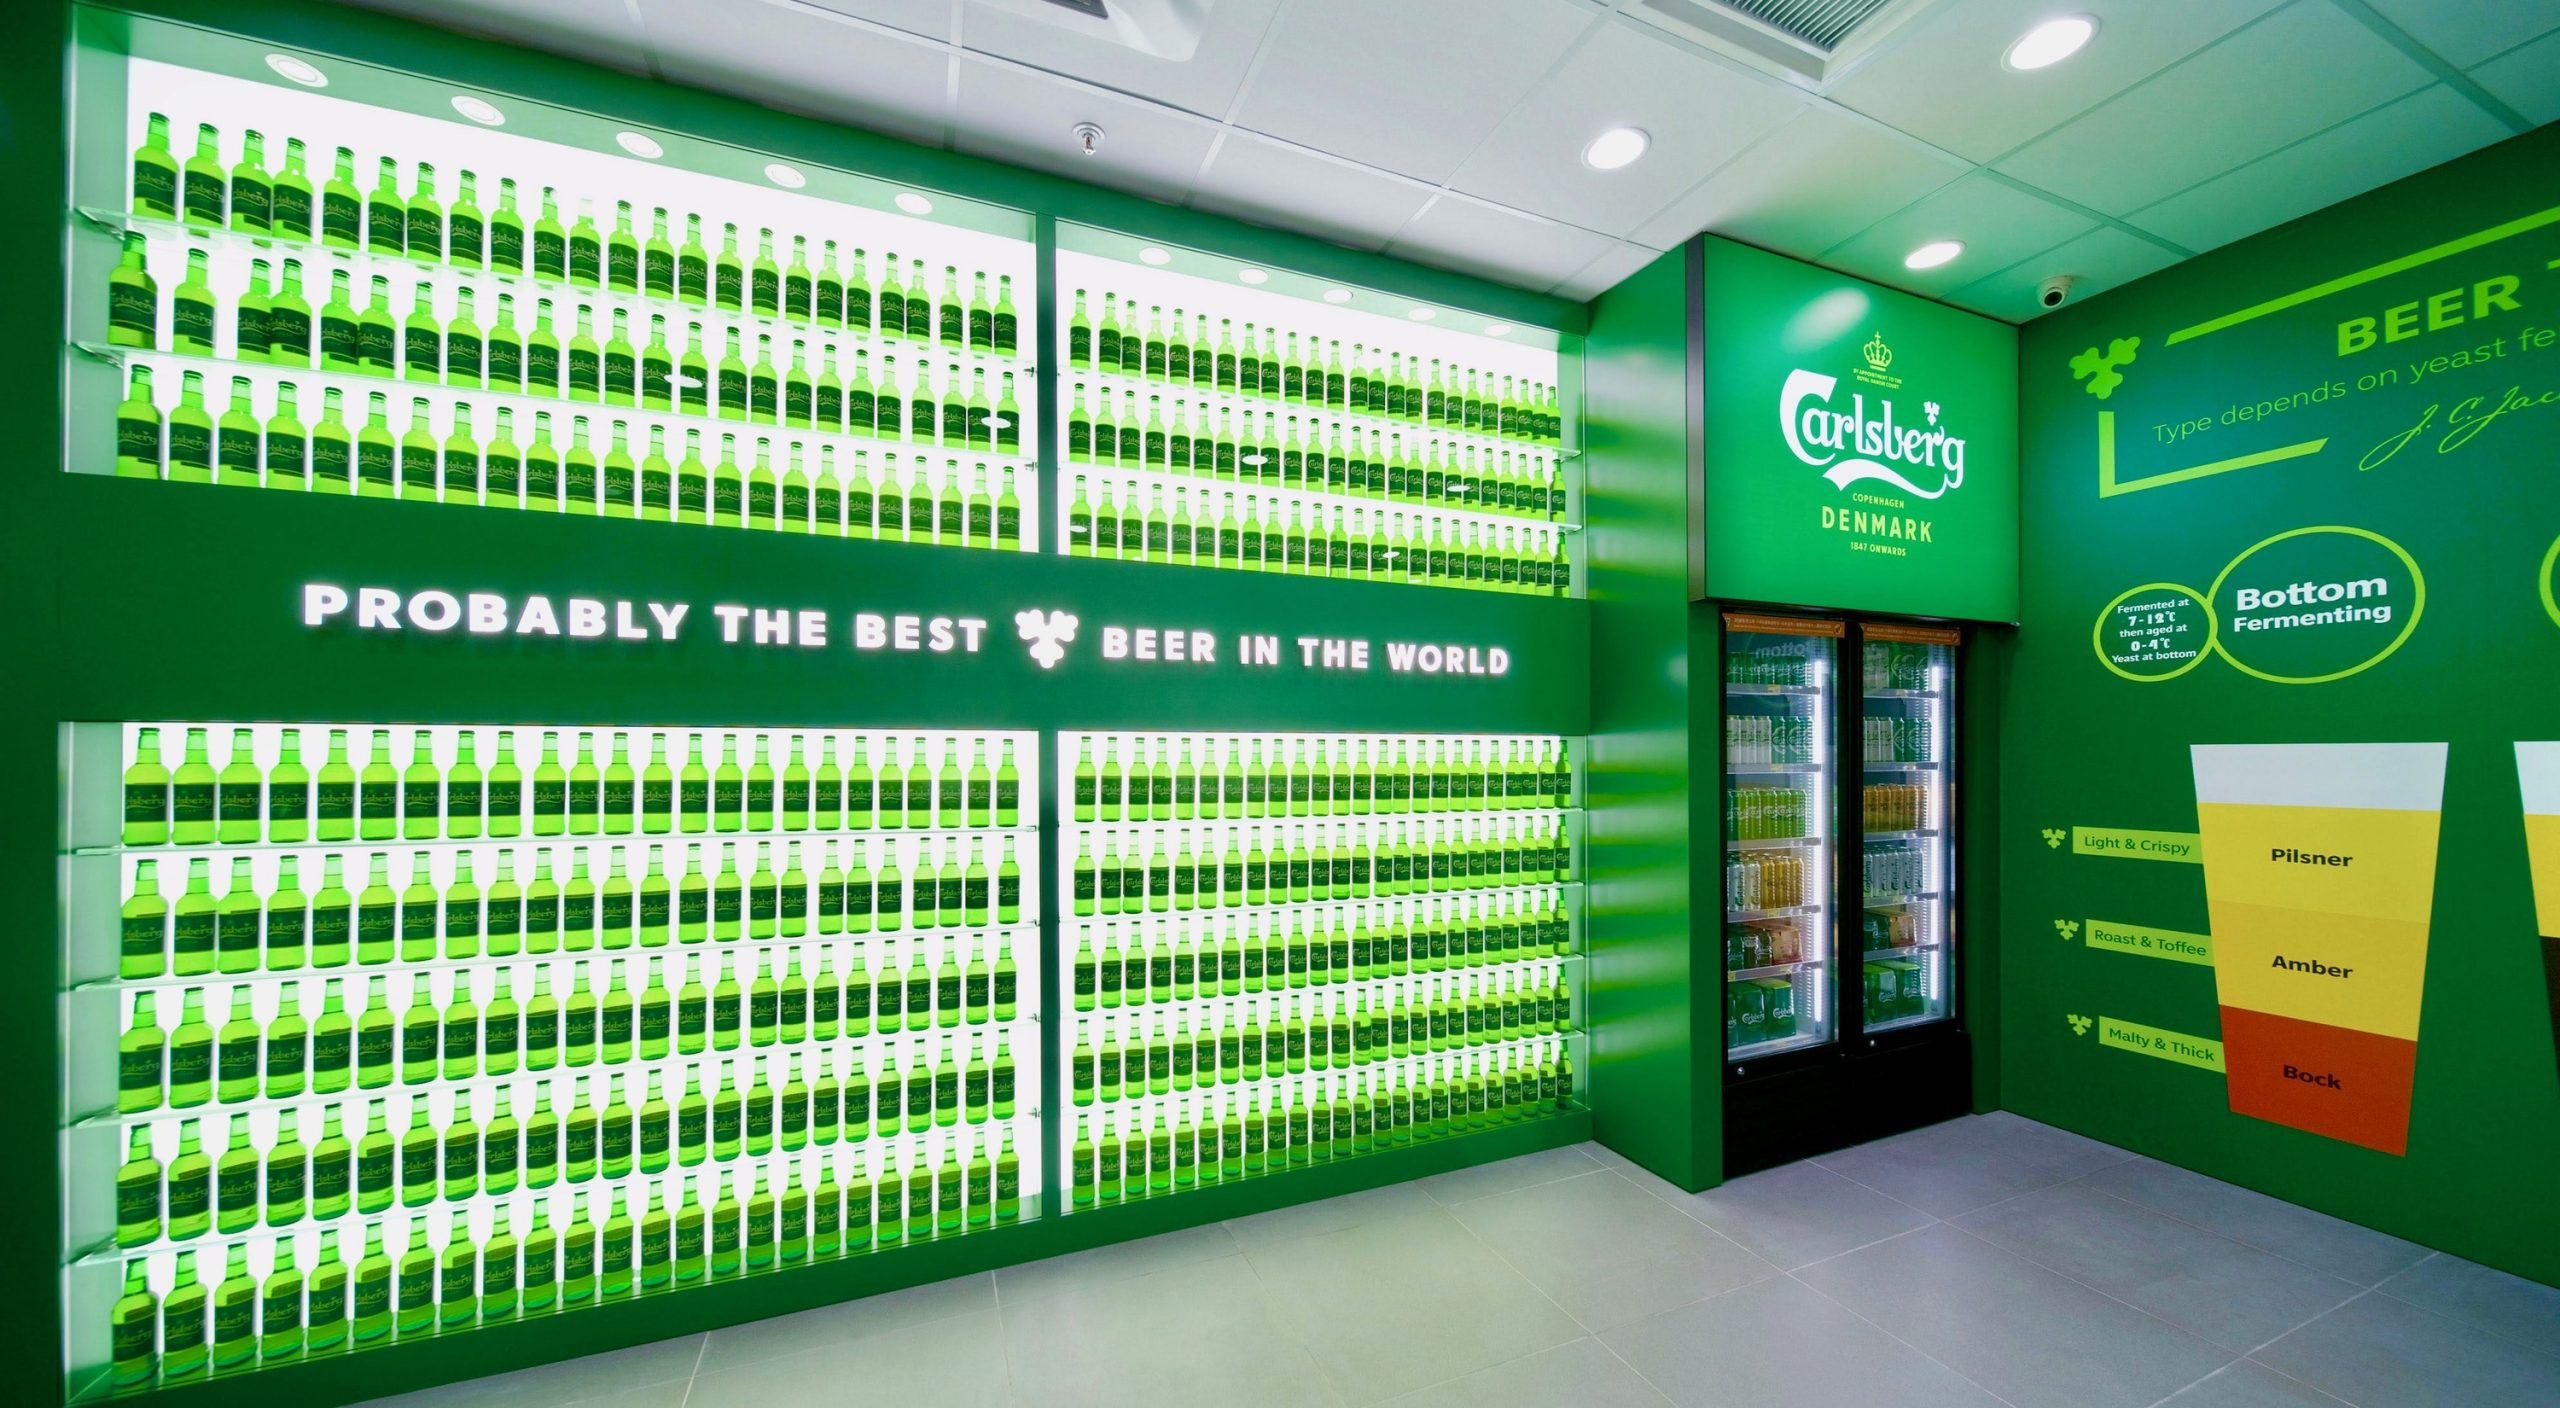 7-eleven And Carlsberg Open New Concept Store In Hong Kong photo